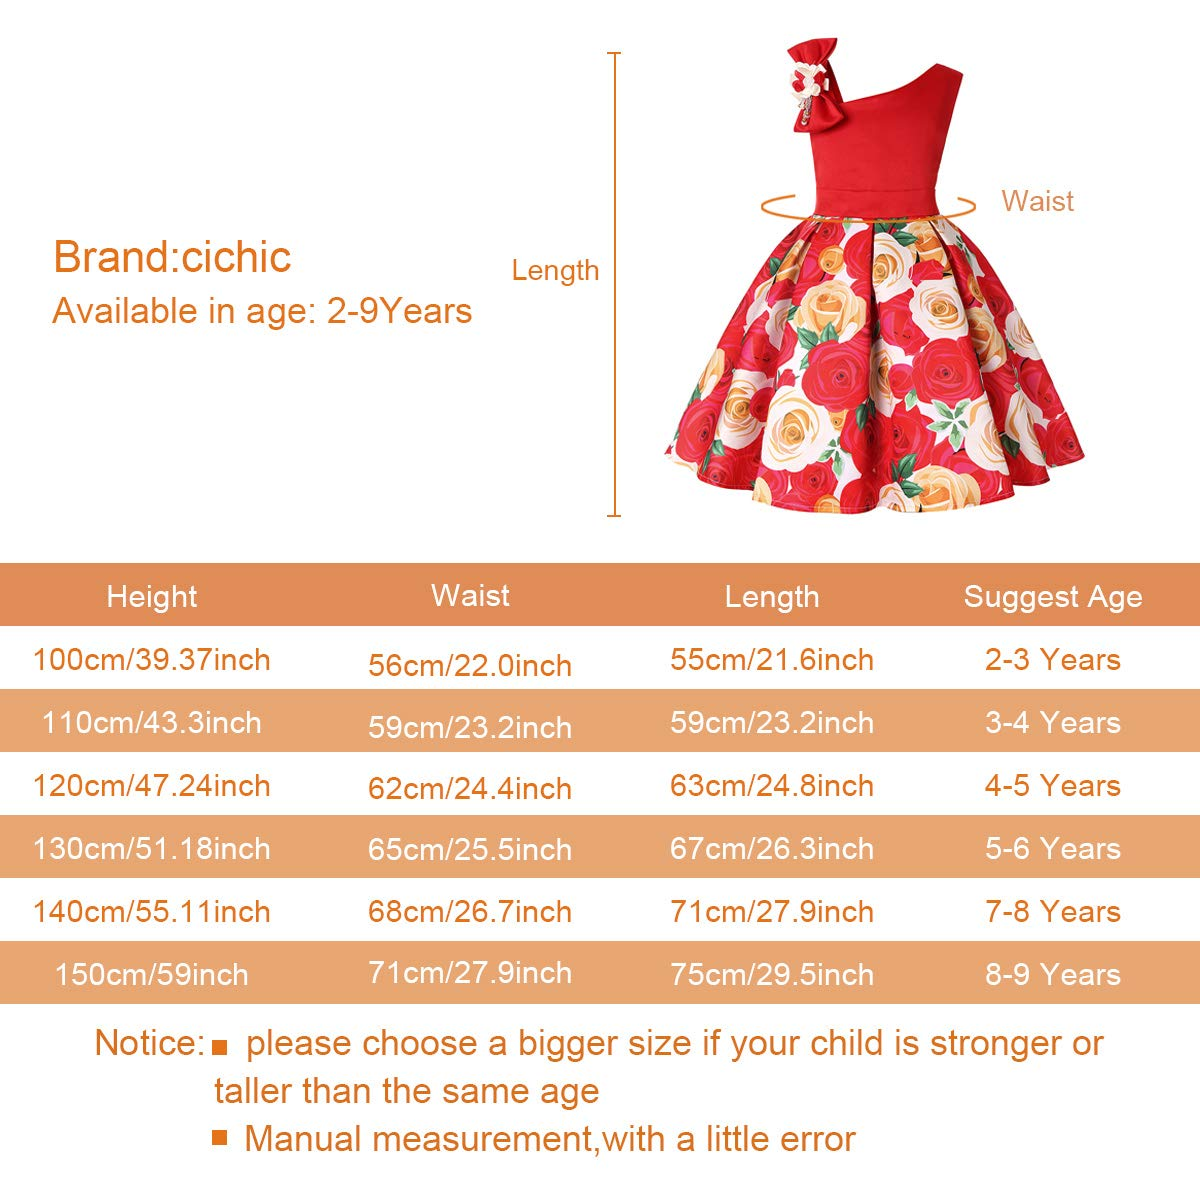 Cichic Girls Dresses 2019 Flower Girl Wedding Dress Elegant Dresses for Party 2-9 Years